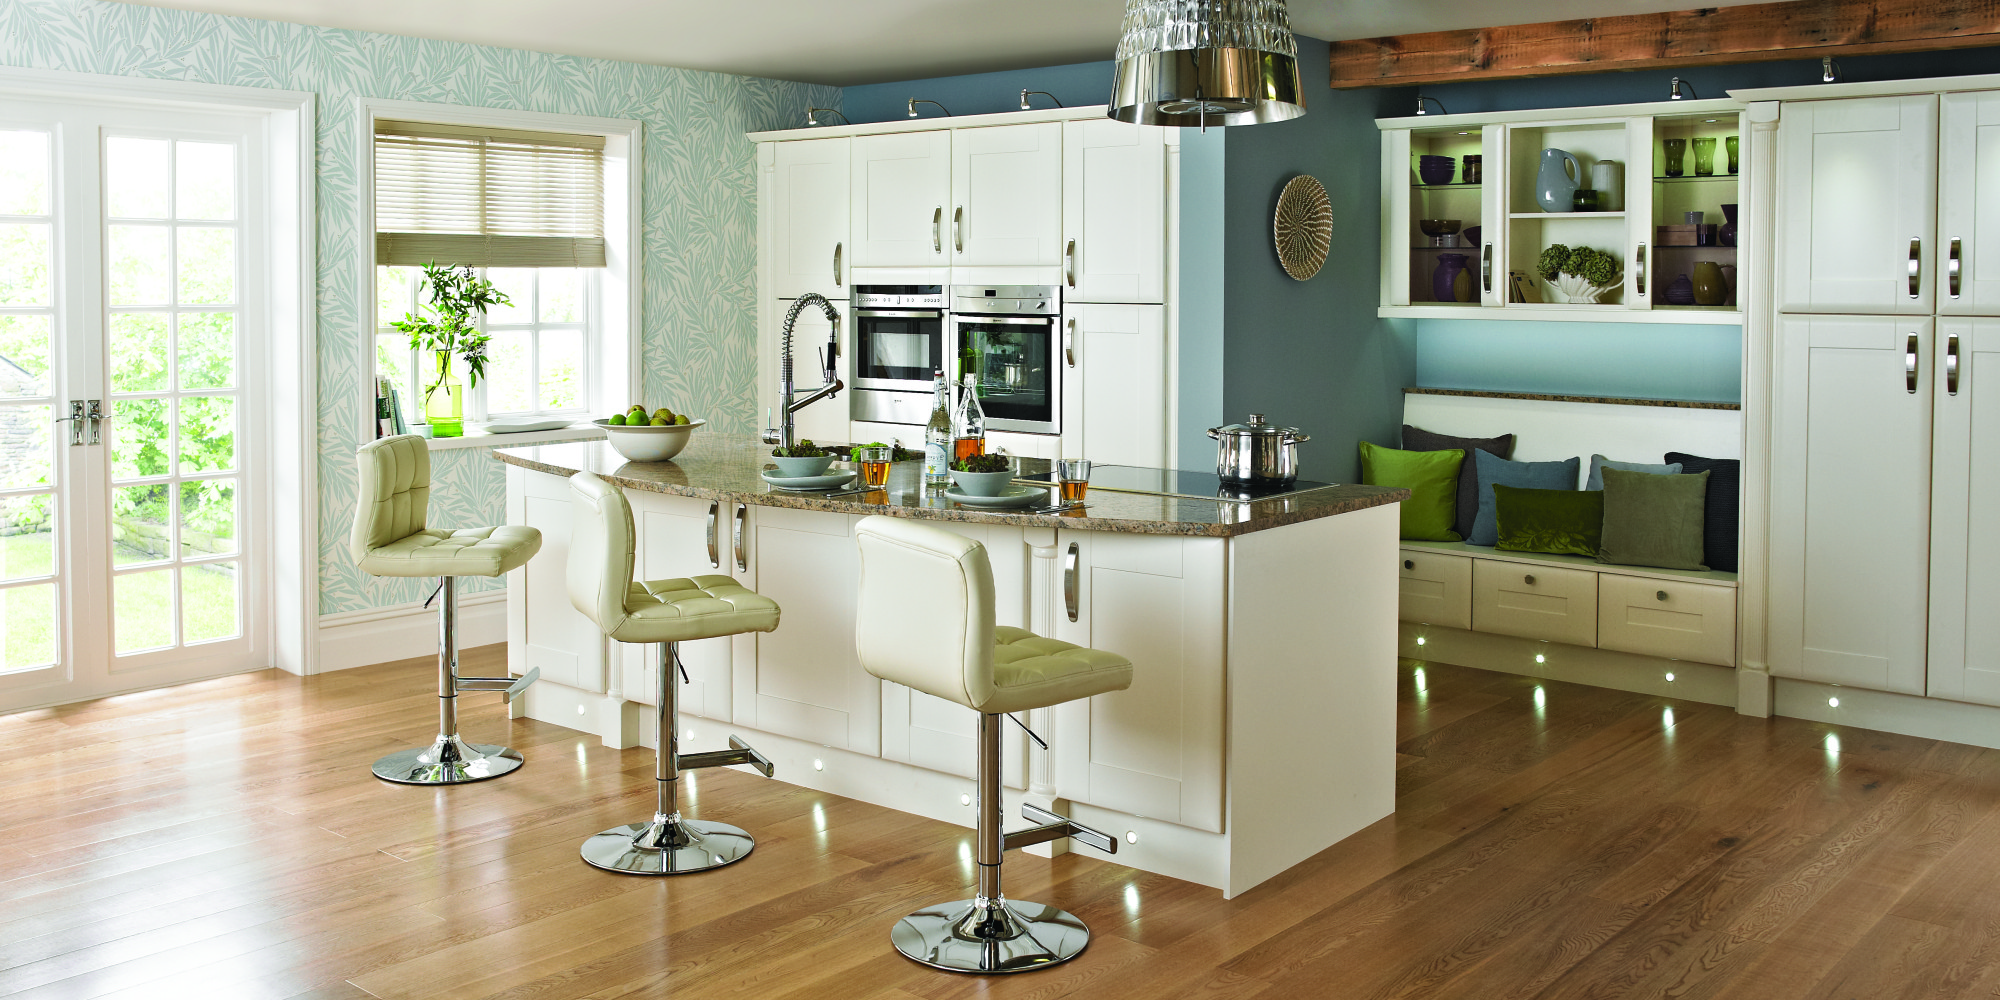 Stunning Kitchen Islands HuffPost - Open country kitchen designs